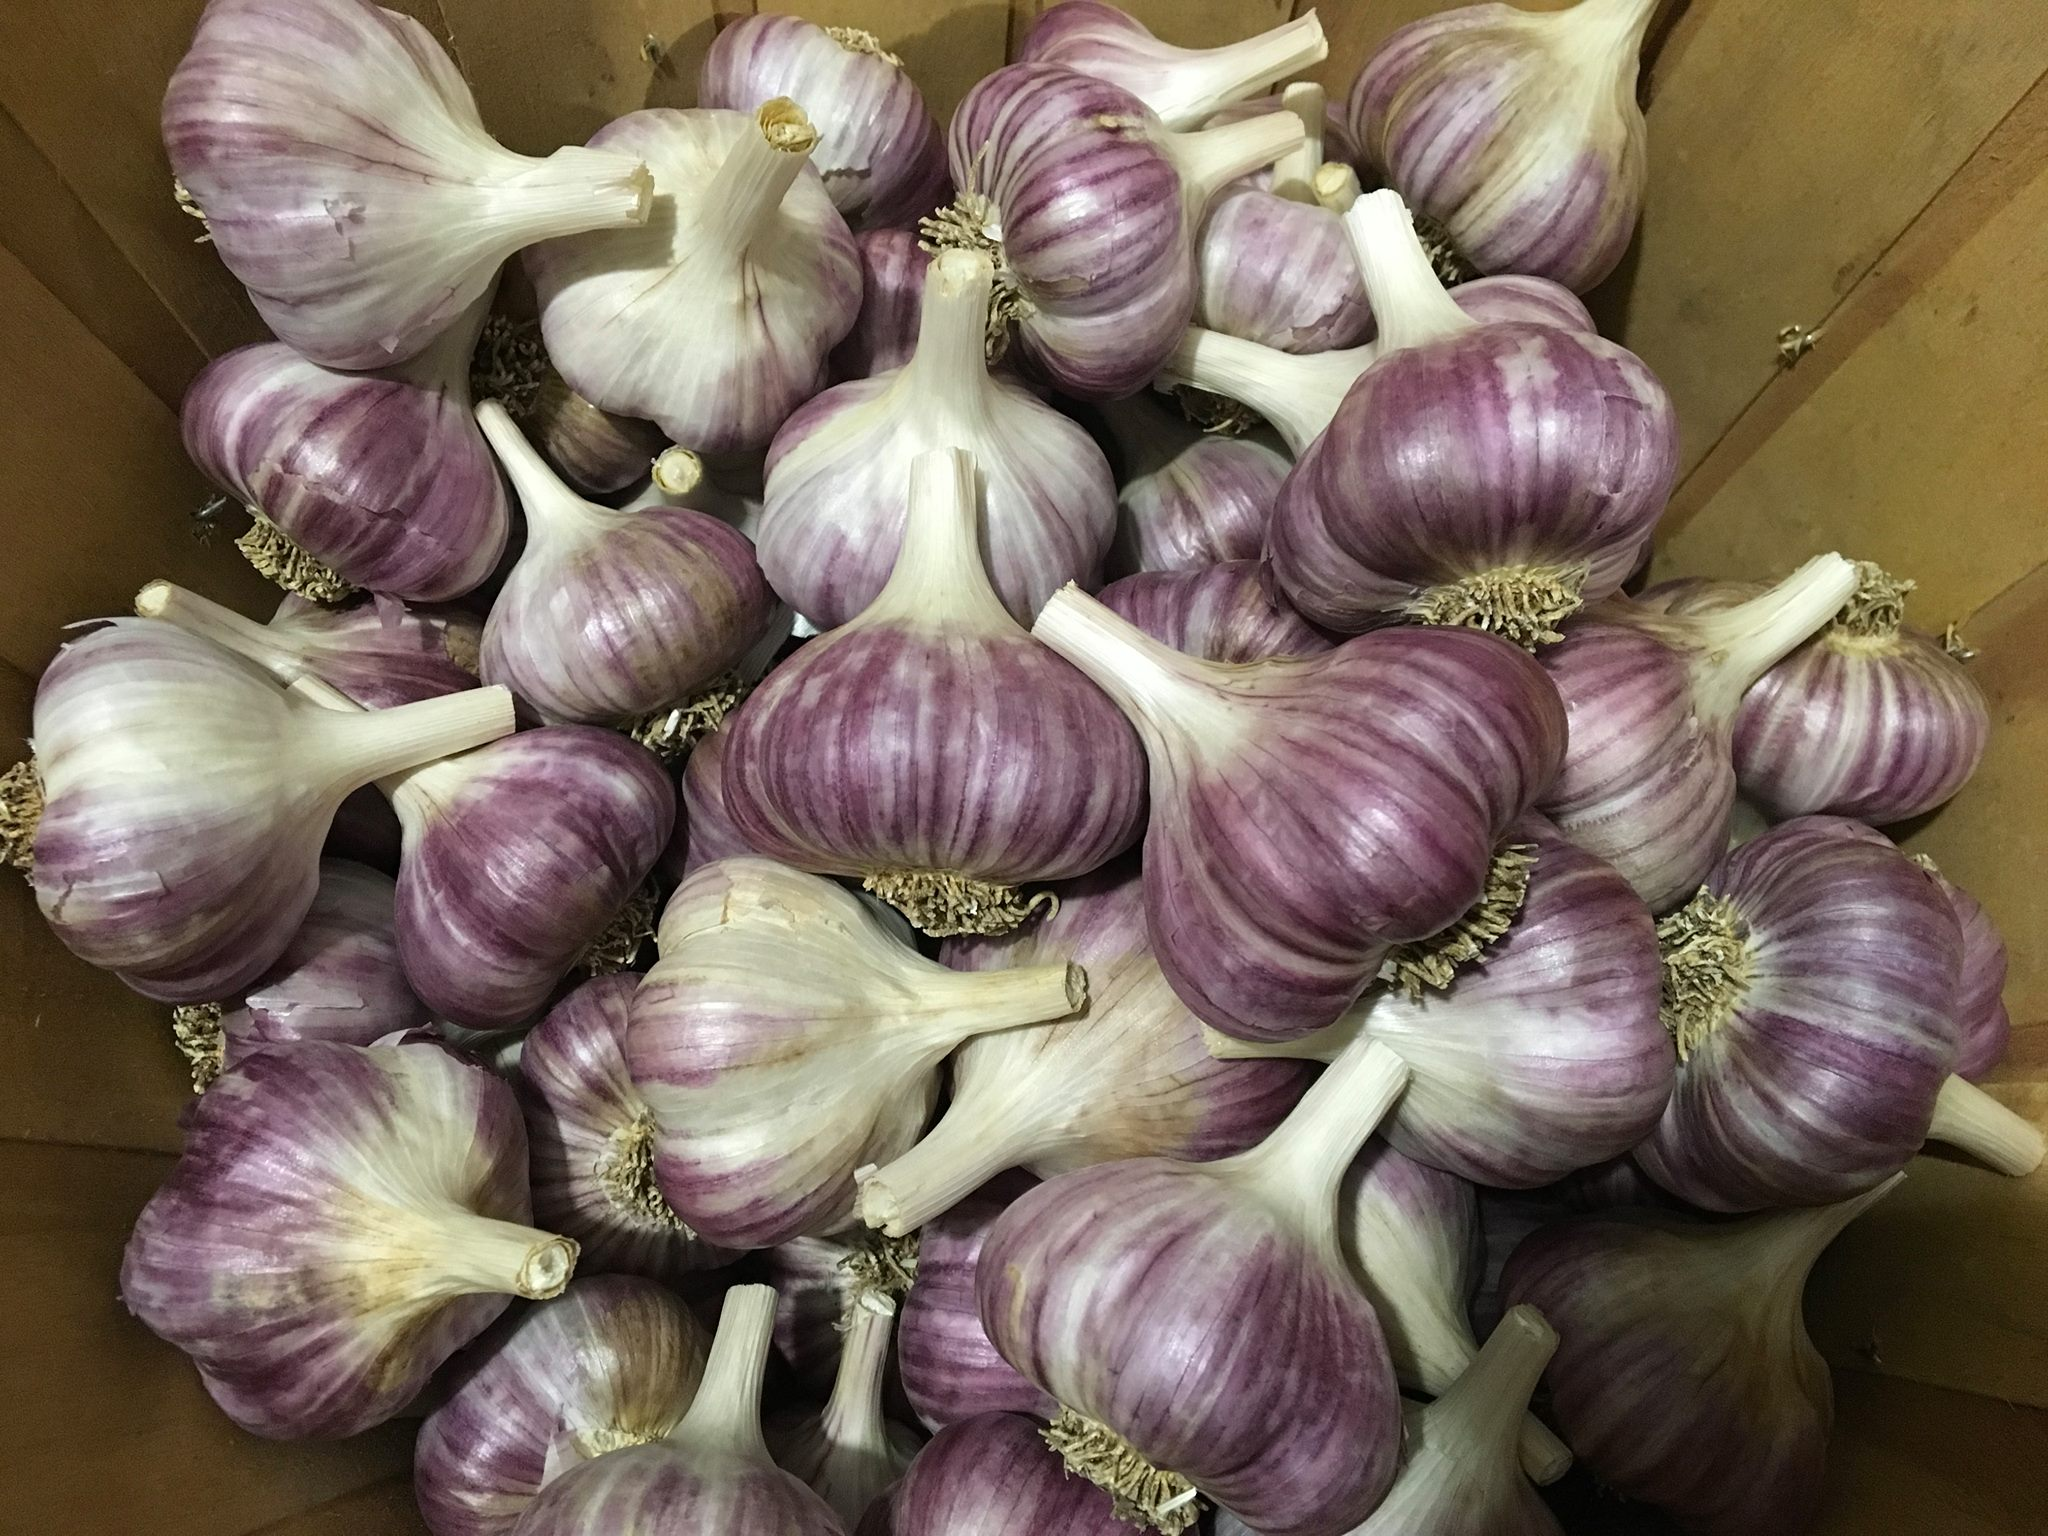 Dax Funderburk - Garlic Bulbs - Metechi .jpg